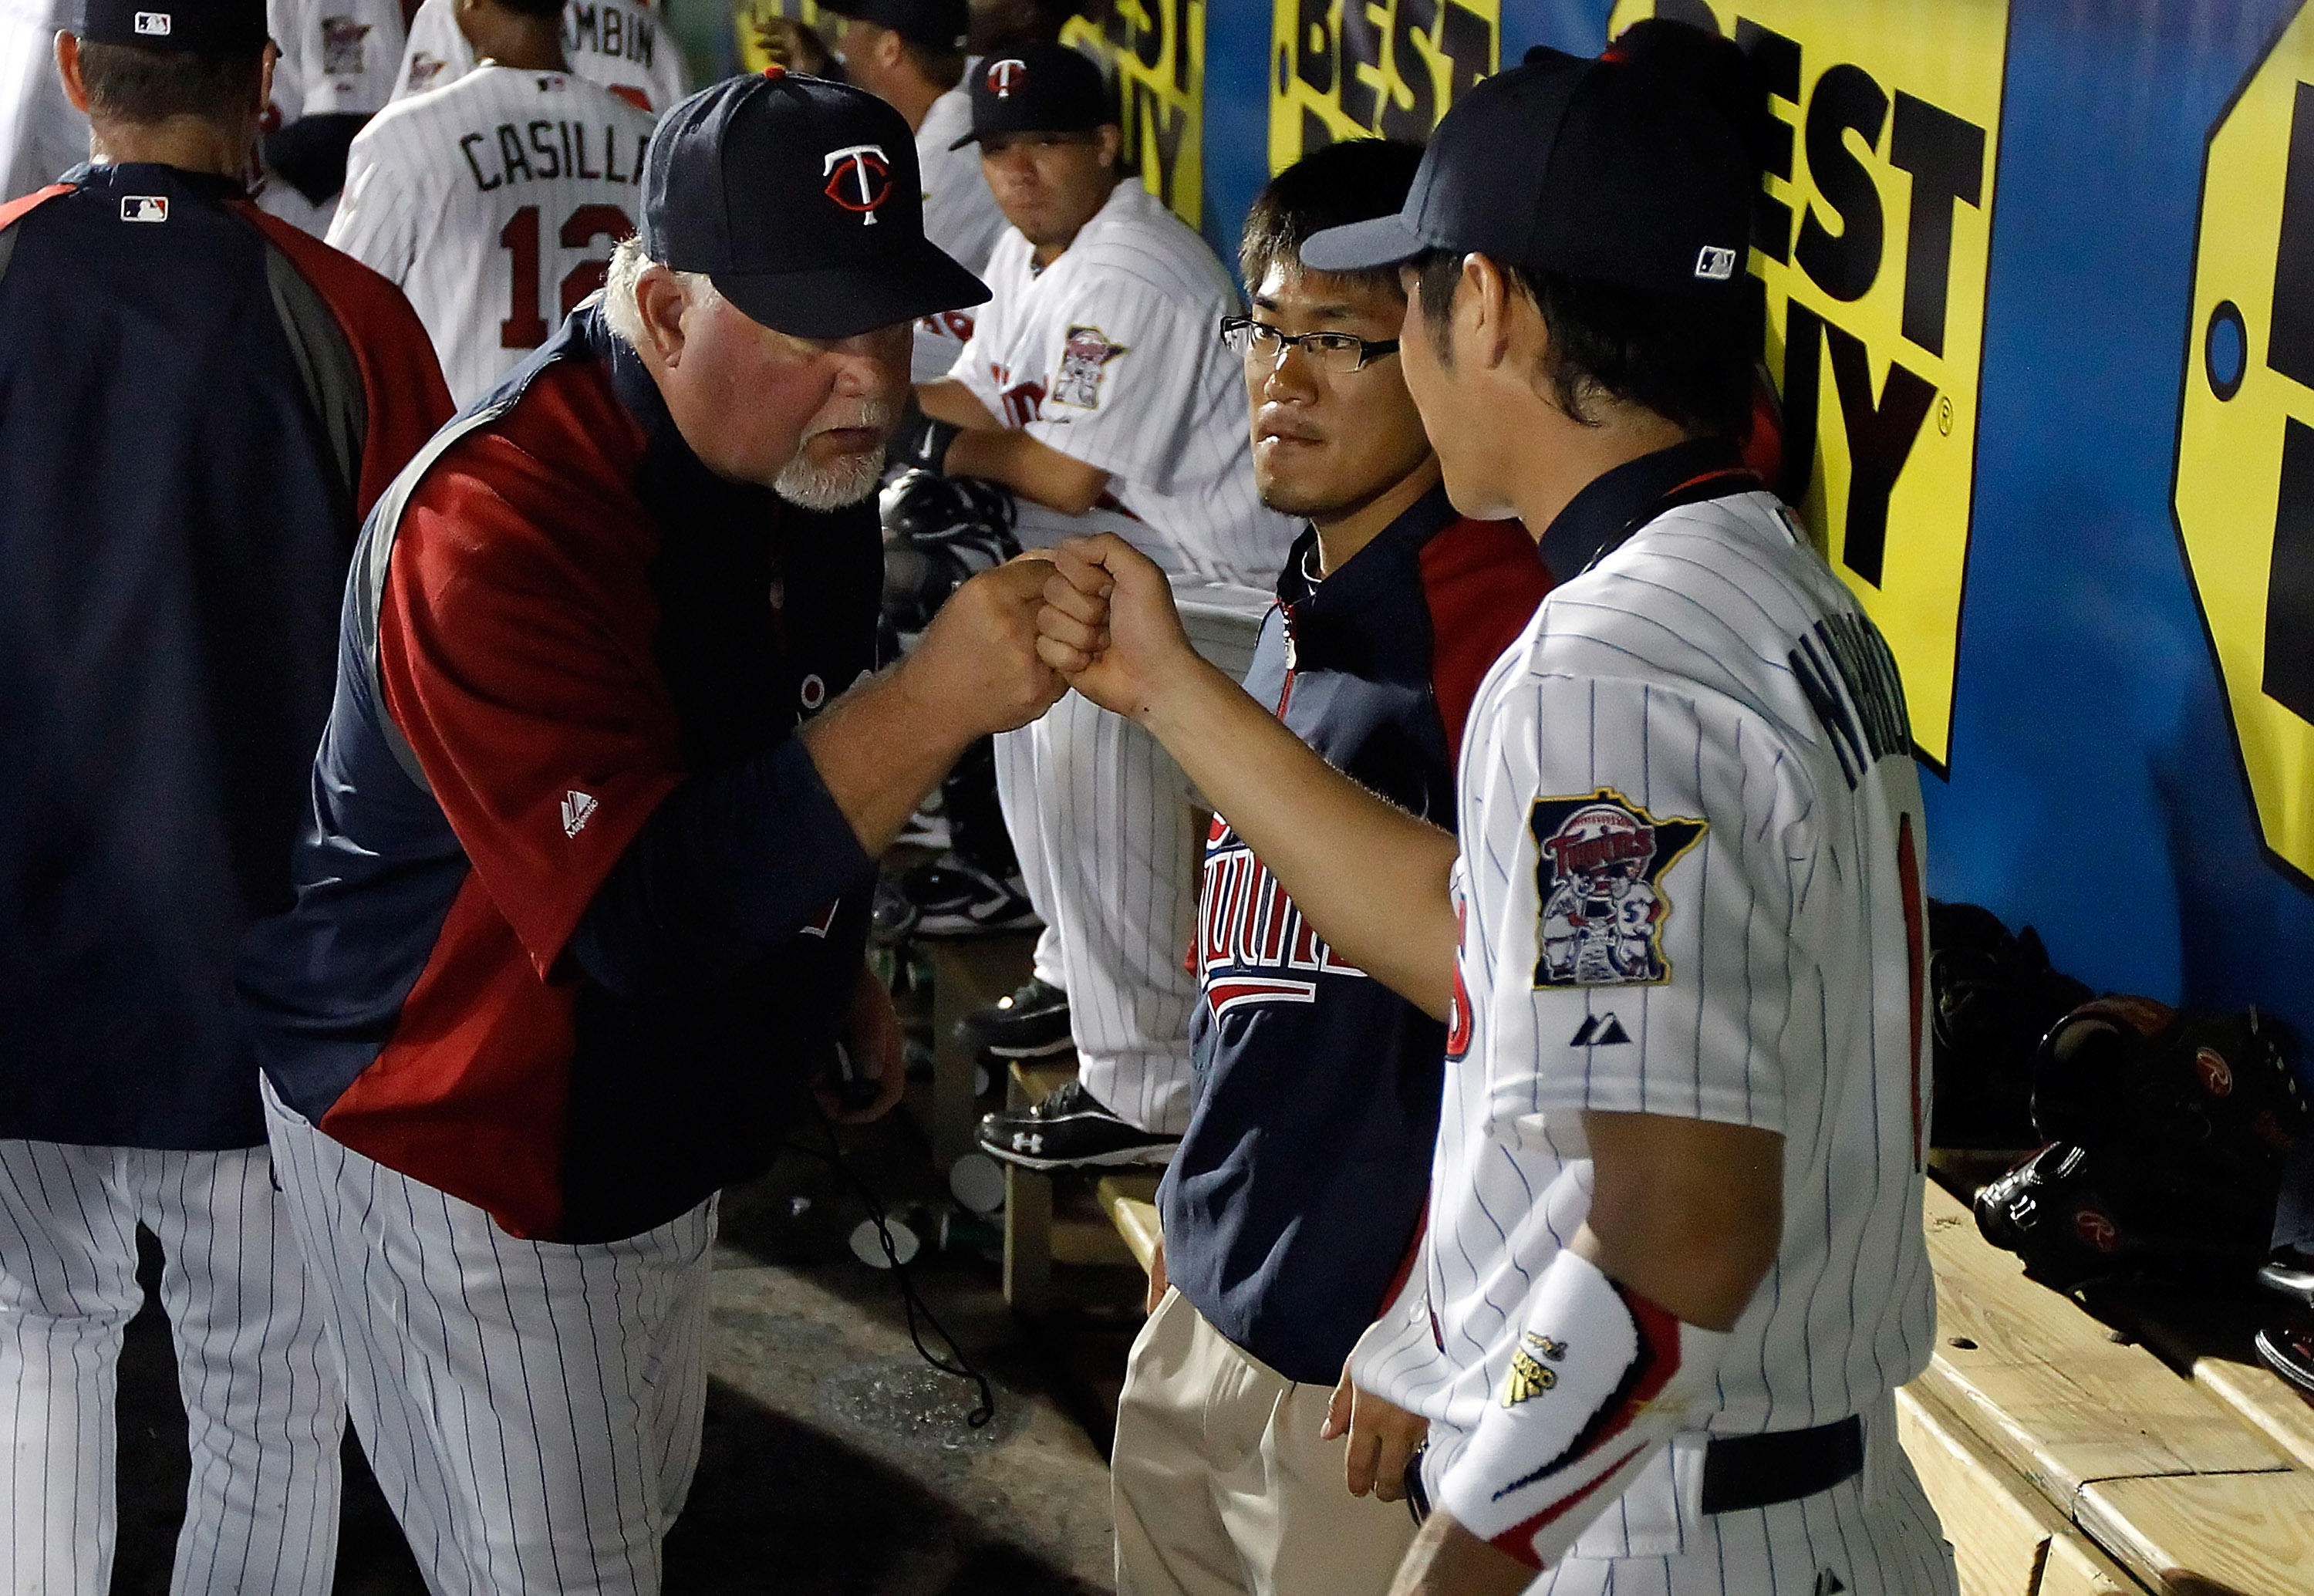 FORT MYERS, FL - FEBRUARY 27:  Manager Ron Gardenhire #35 congratulates infielder Tsuyoshi Nishioka #1 of the Minnesota Twins after making a great play against the Boston Red Sox during a Grapefruit League Spring Training Game at Hammond Stadium on Februa